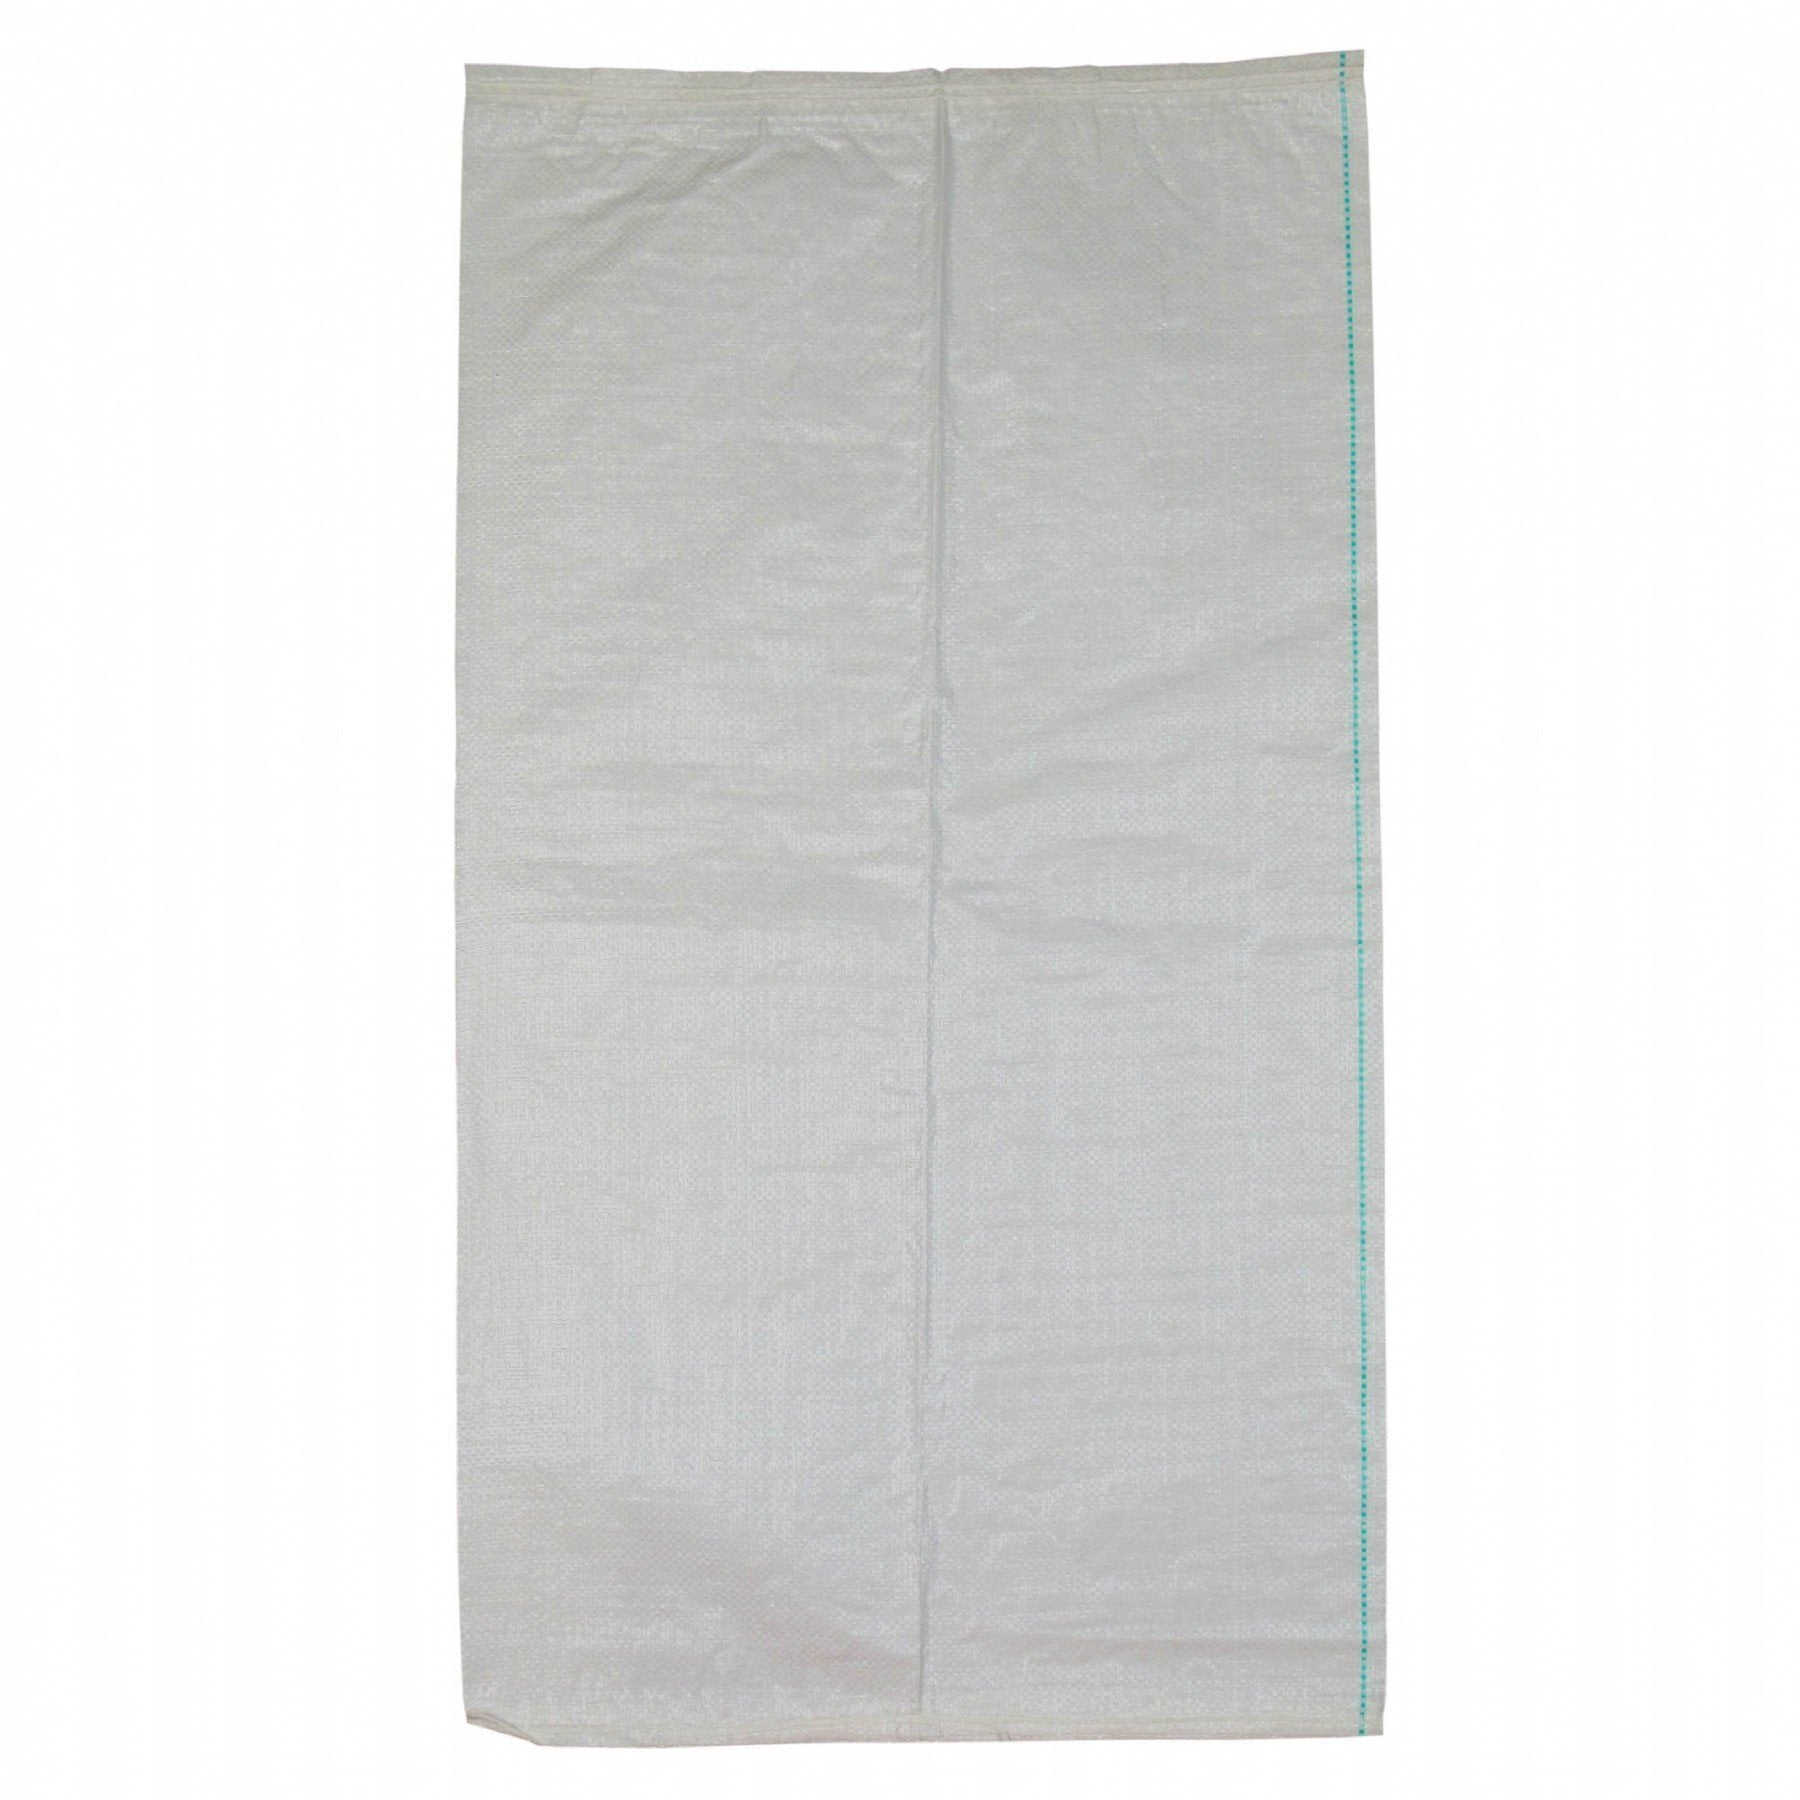 500 X 900mm White UV Stabilised Unlaminated Woven Polypropylene (Polywoven) Bag Sack - Pack of 10 ProEarth-Normal-Prospectors